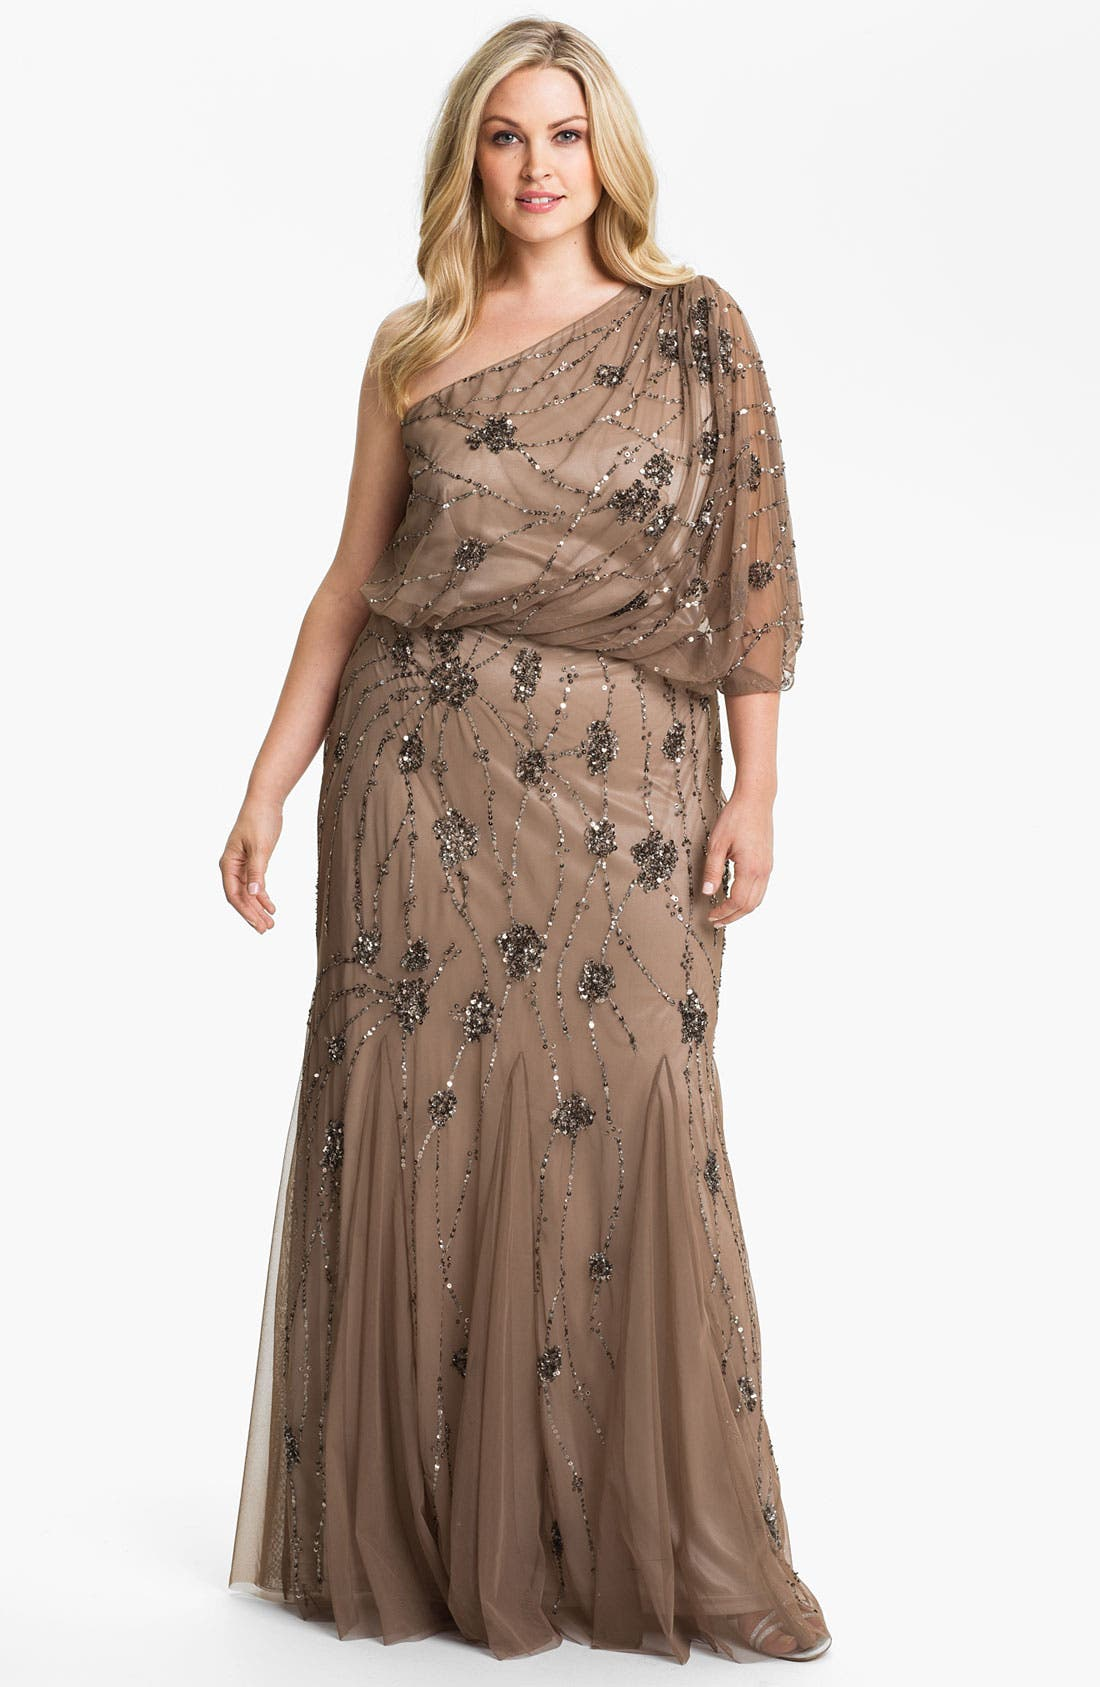 Alternate Image 1 Selected - Adrianna Papell Beaded One Shoulder Gown (Plus Size)